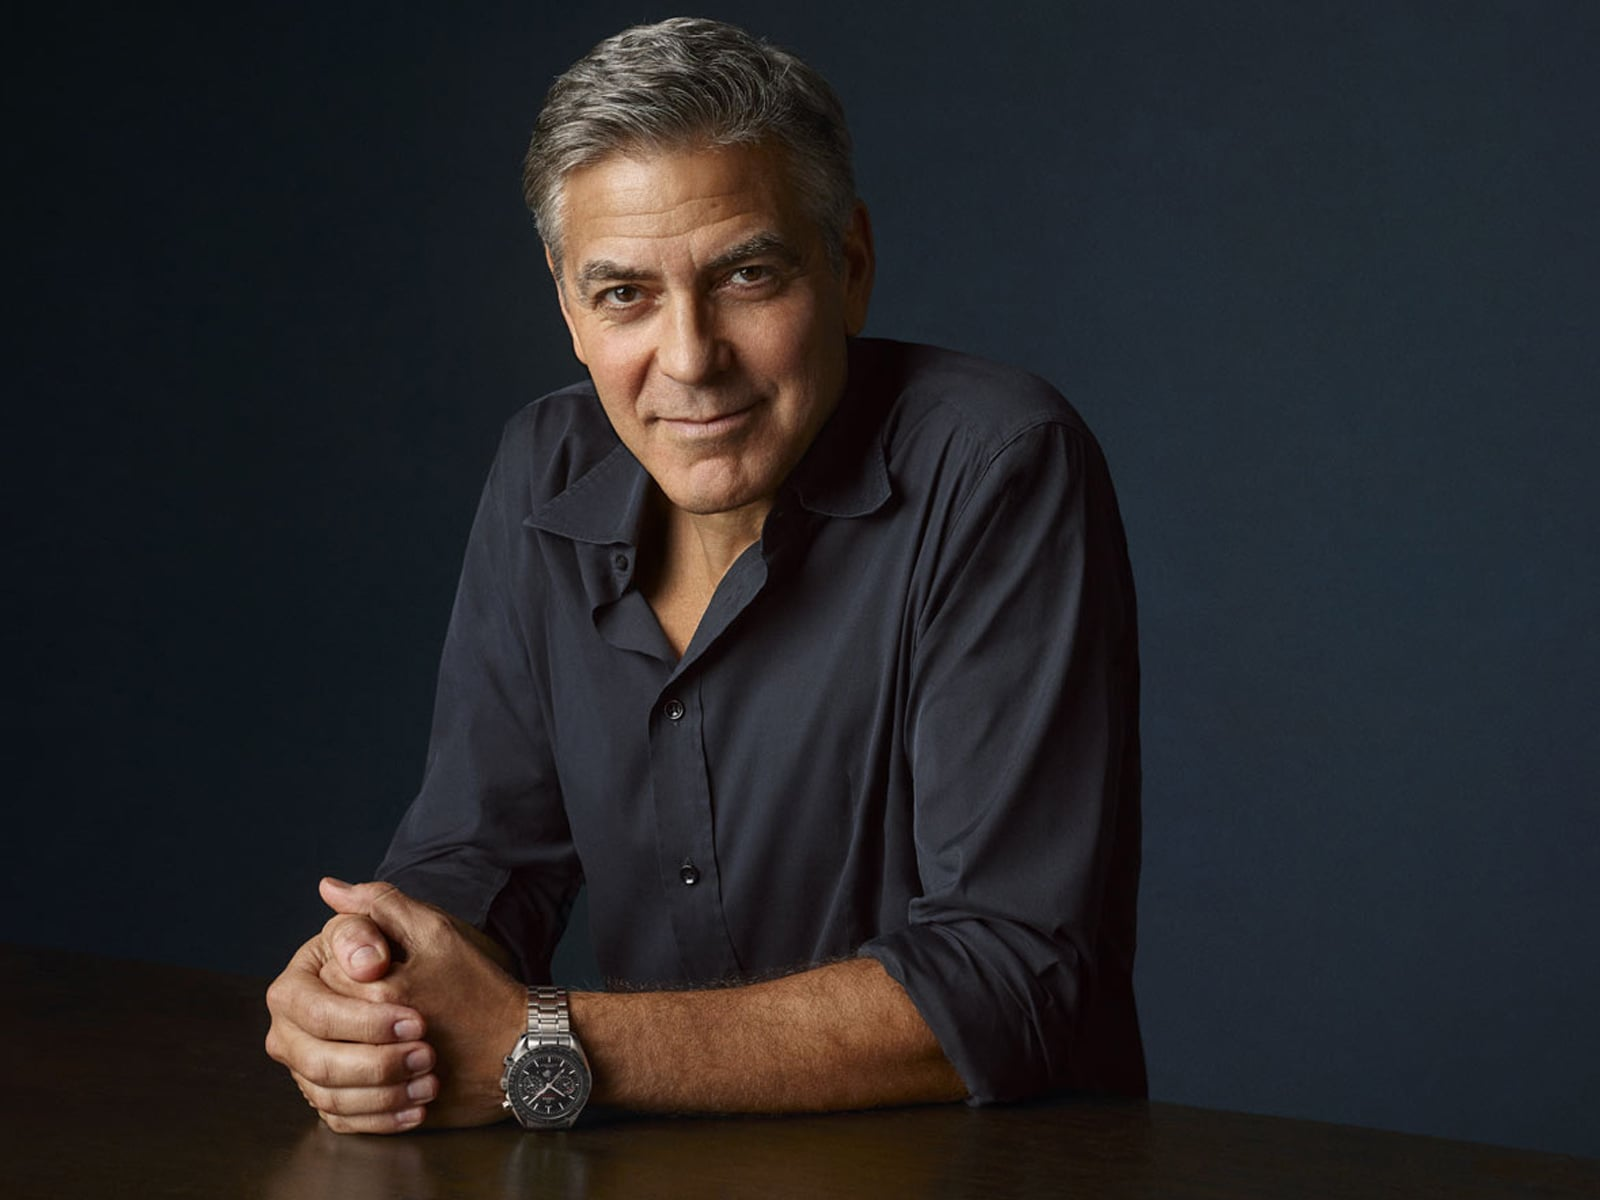 George Clooney leaning on a table